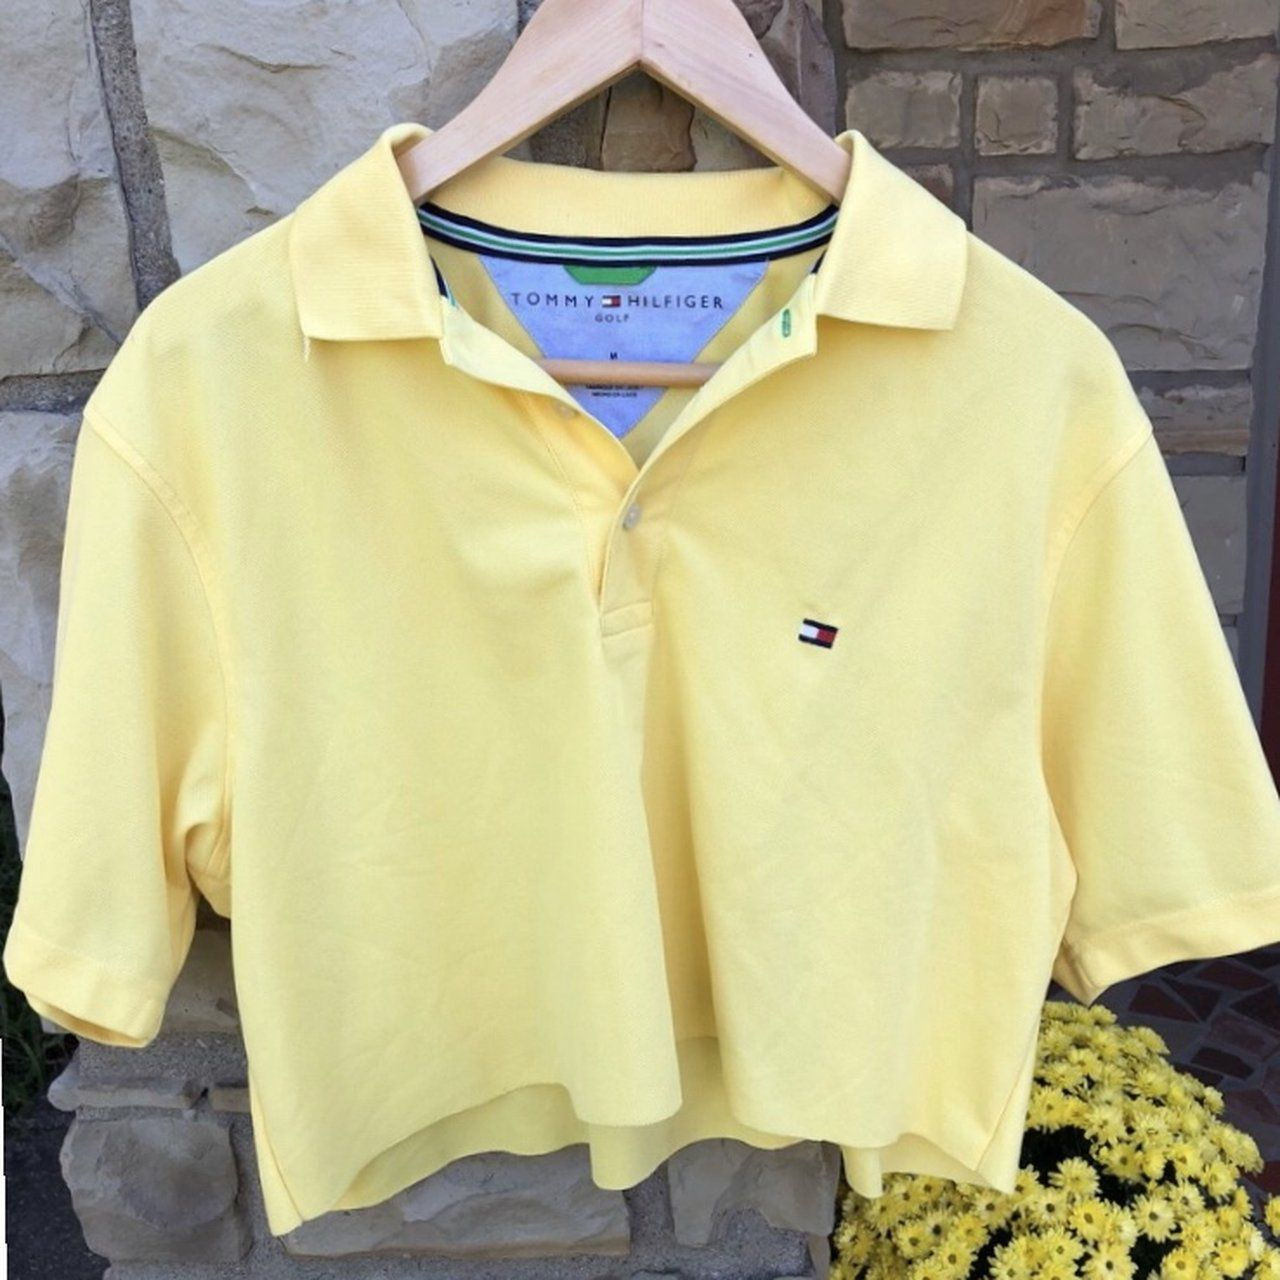 465dcea61a tommy hilfiger slight cropped polo shirt ~no flaws ~emma to - Depop